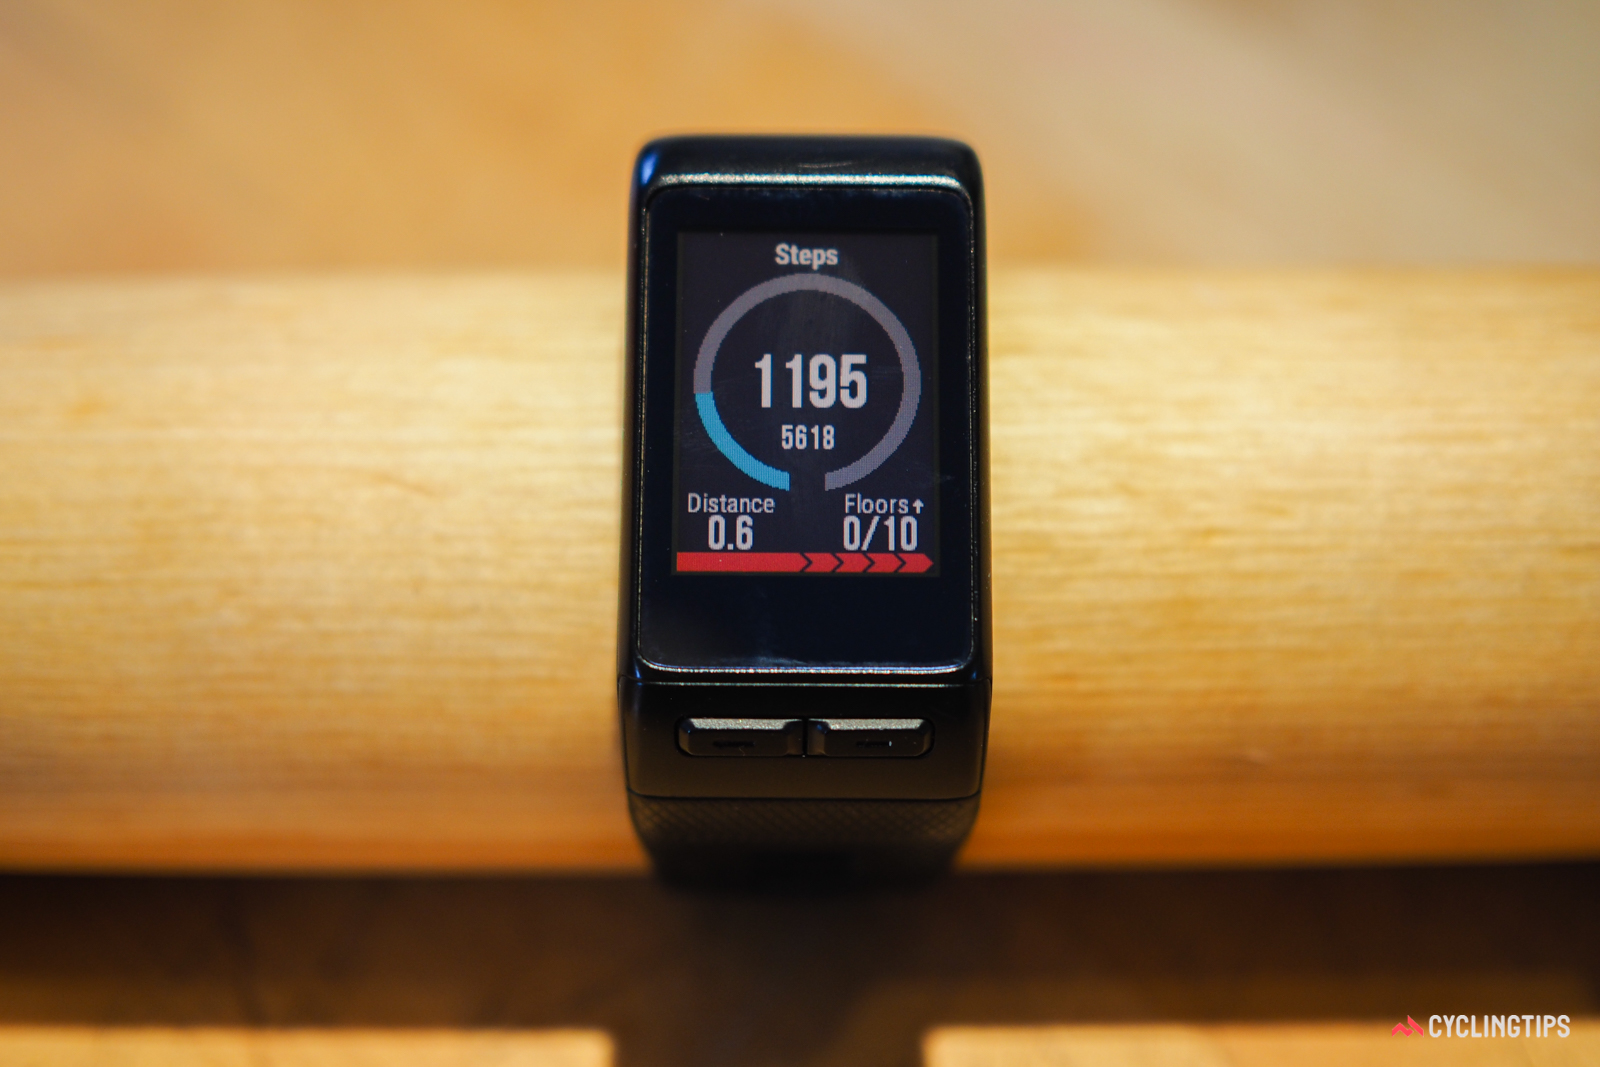 The full-color screen is not only bigger than the monochrome one on the Fitbit Surge, but it's also higher-resolution and easier to read overall.